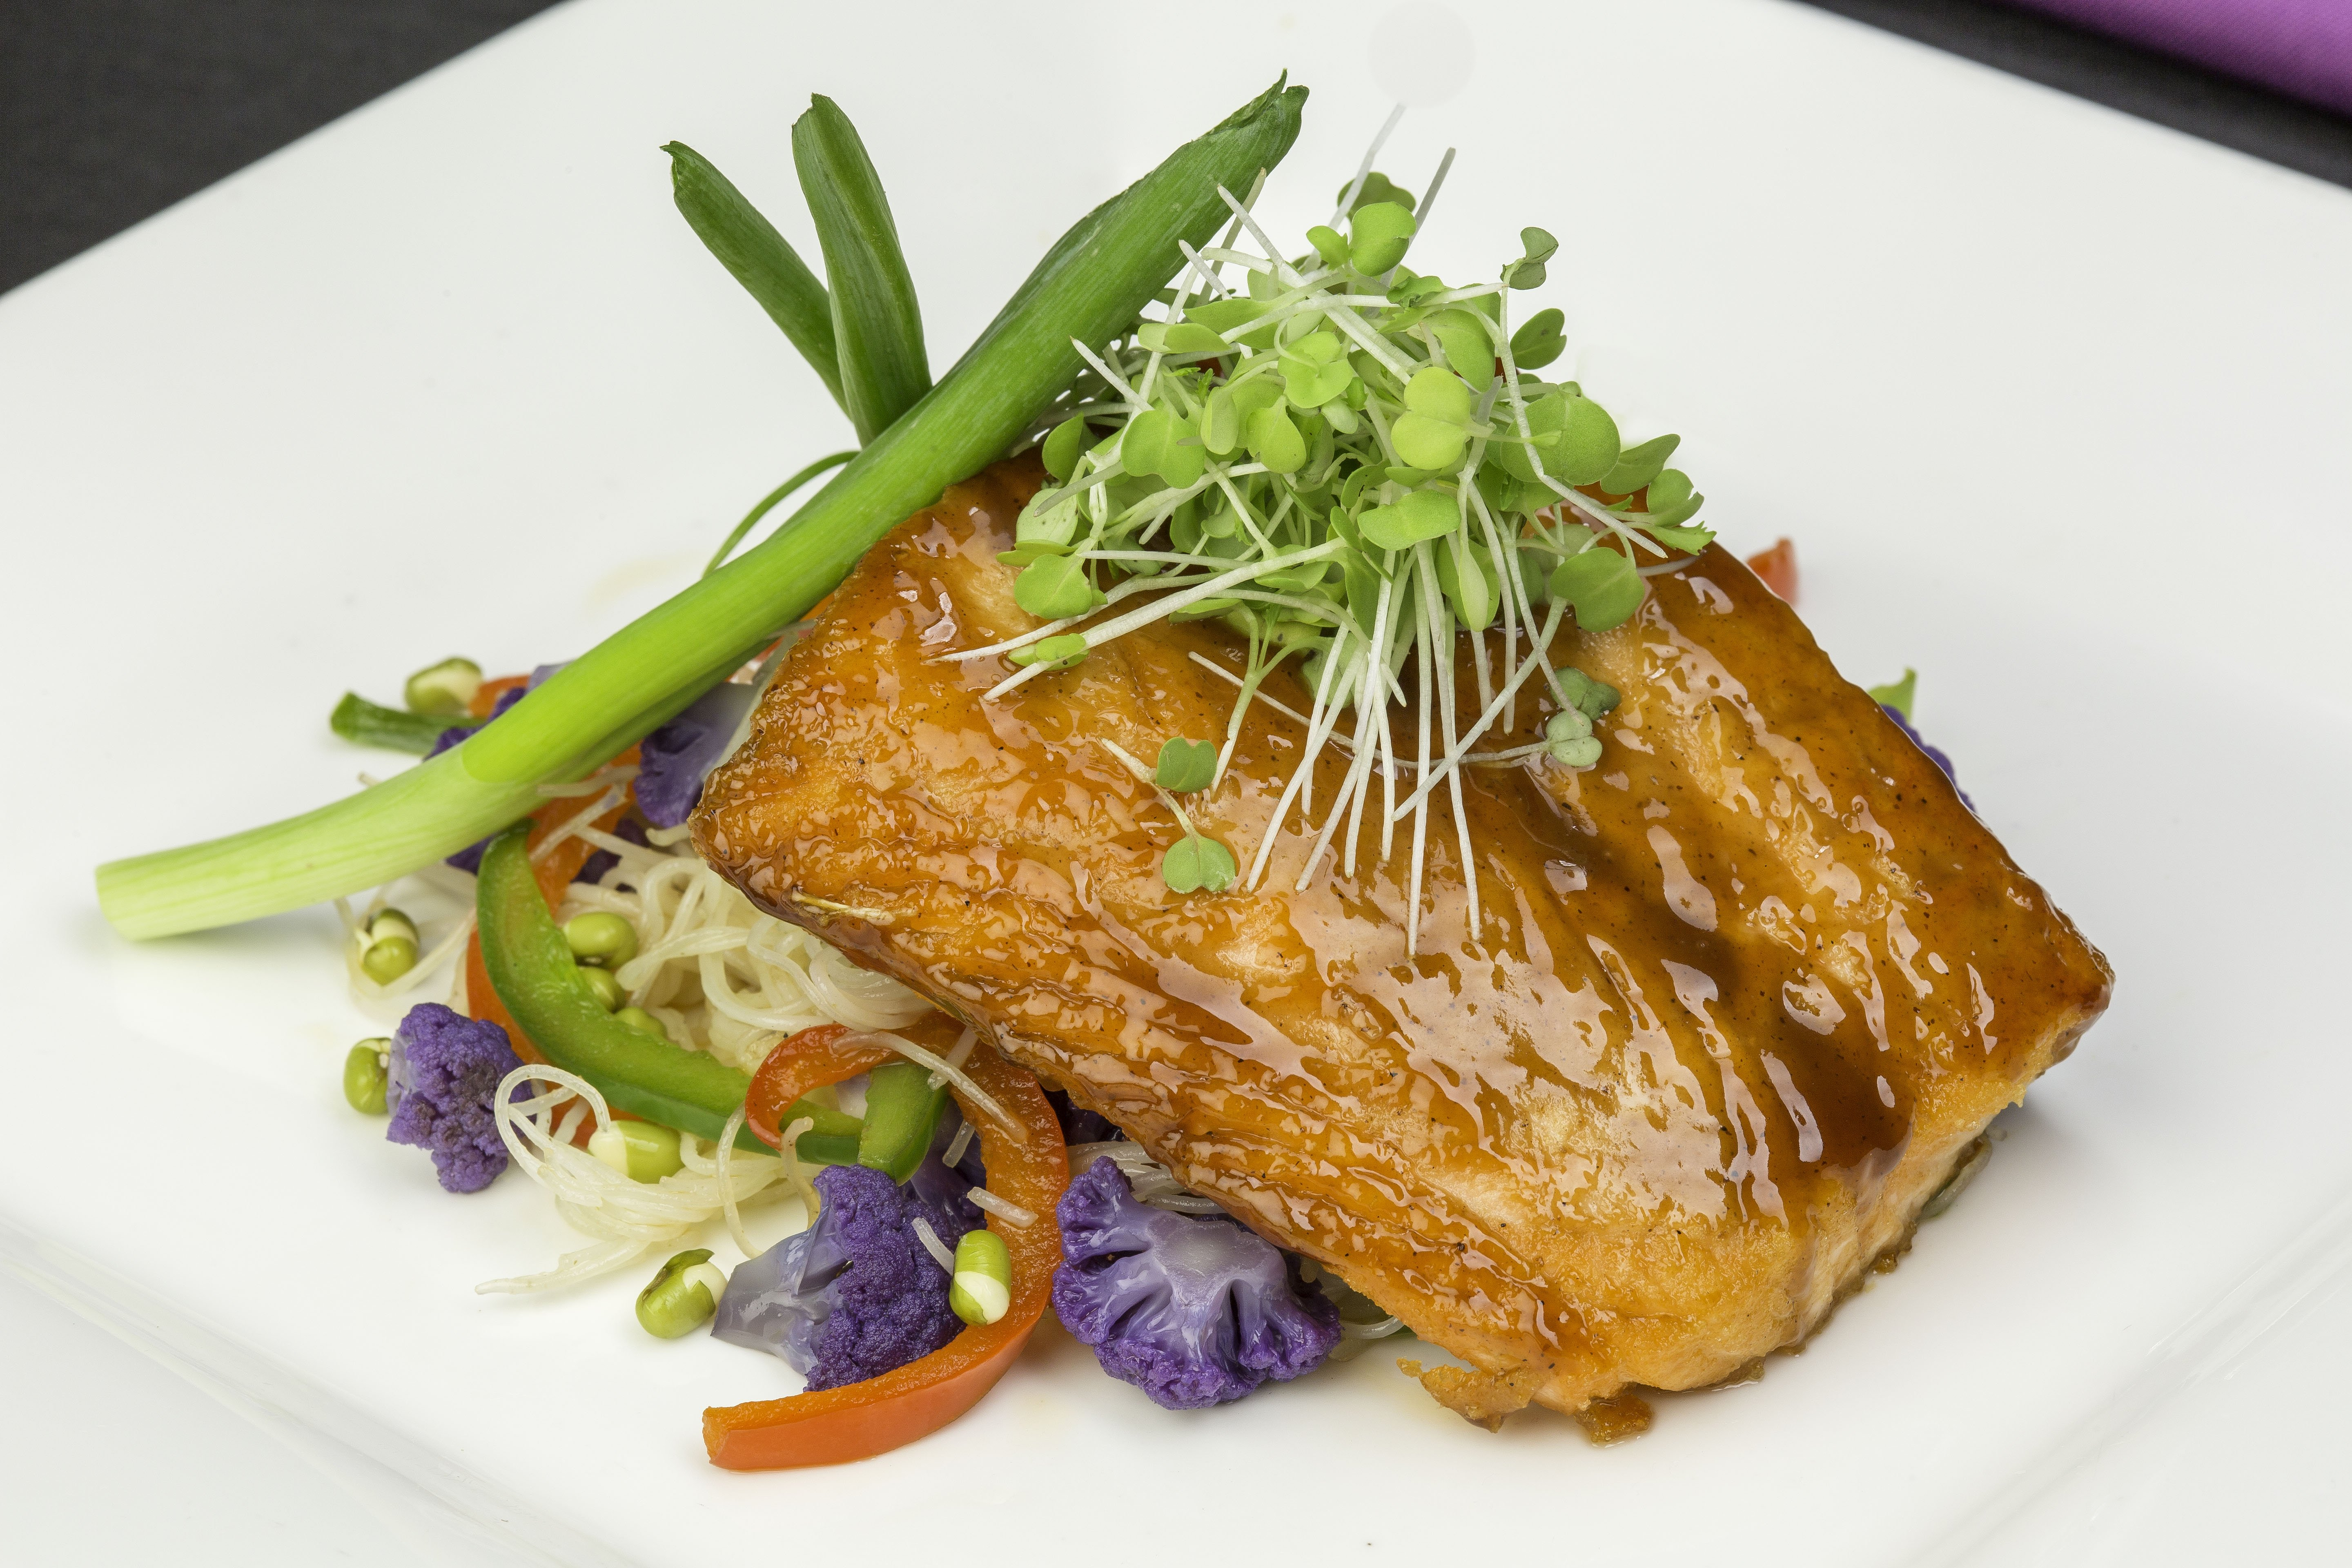 Korean barbequed salmon filet with rice noodles, purple cauliflower and micro greens